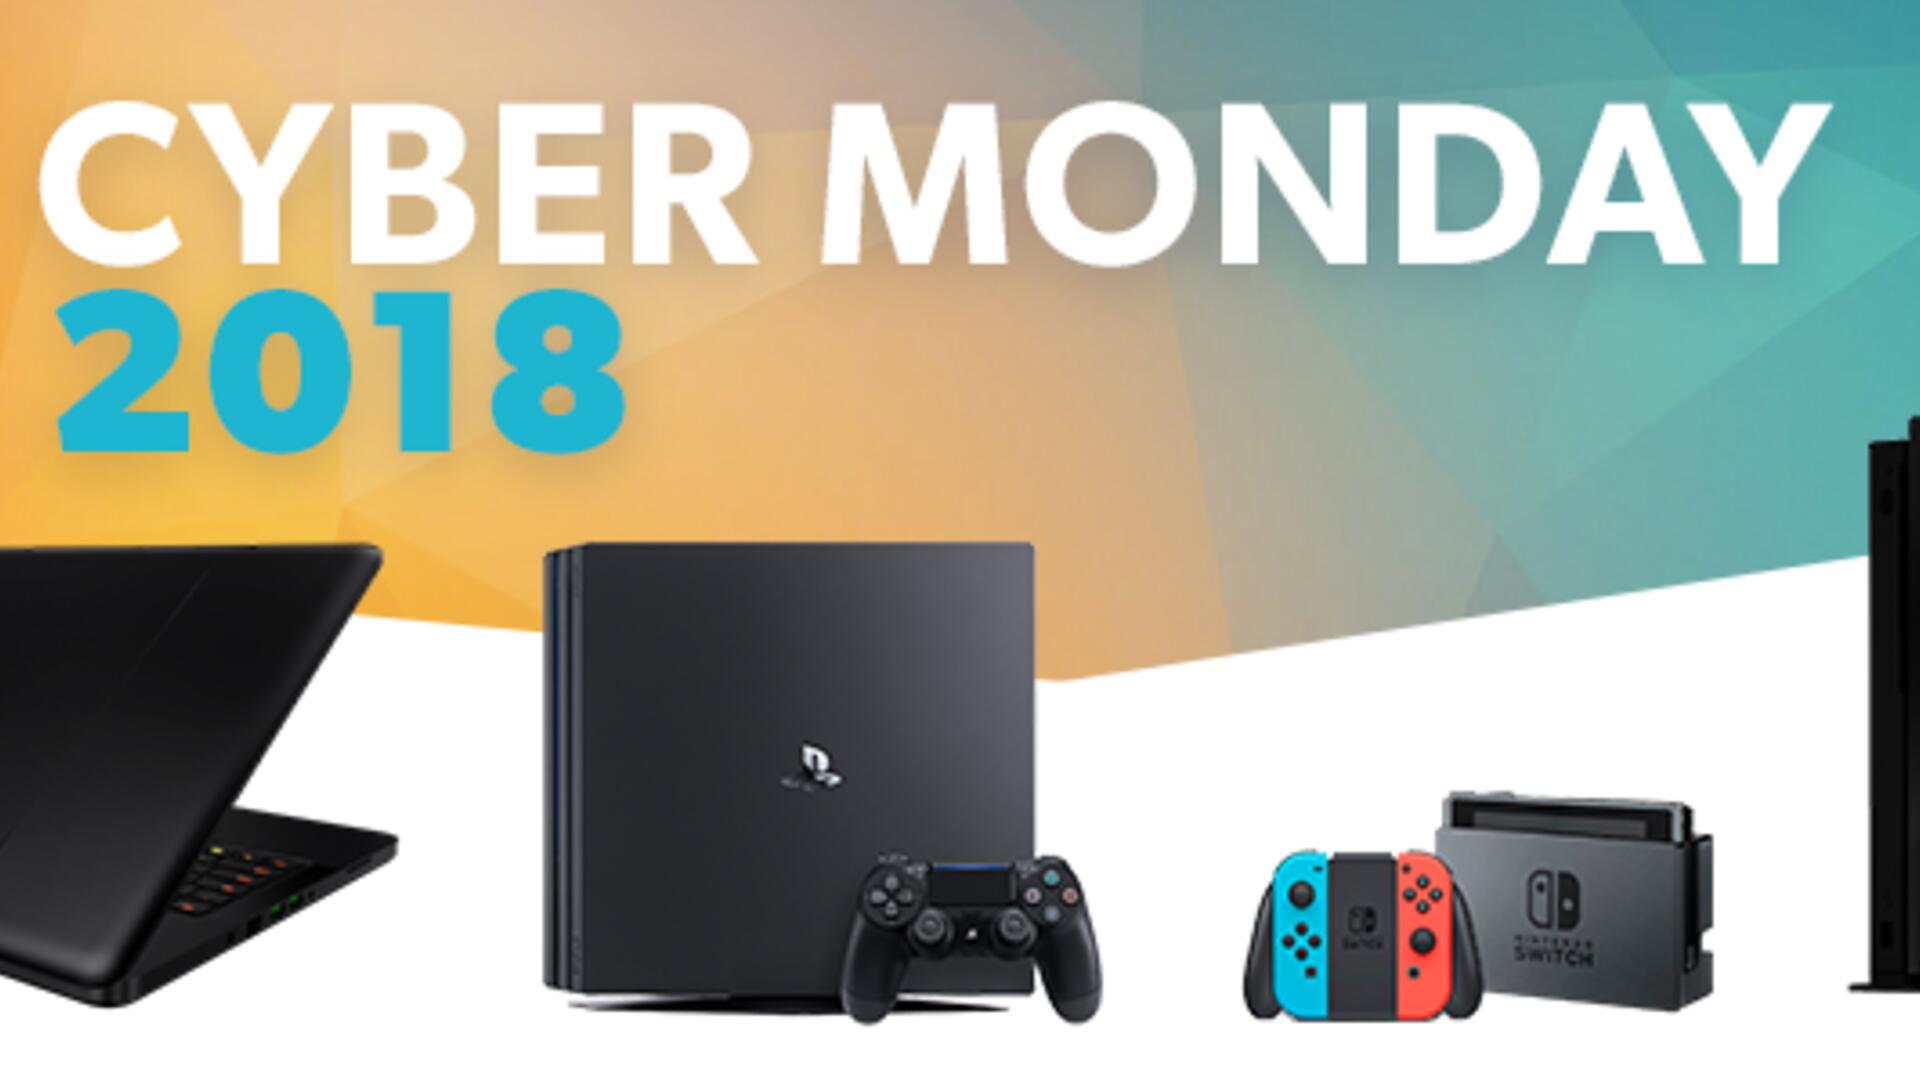 Cyber Monday Video Game Deals Roundup - All the Best PS4, Xbox One, Nintendo Switch and PC Cyber Monday Deals